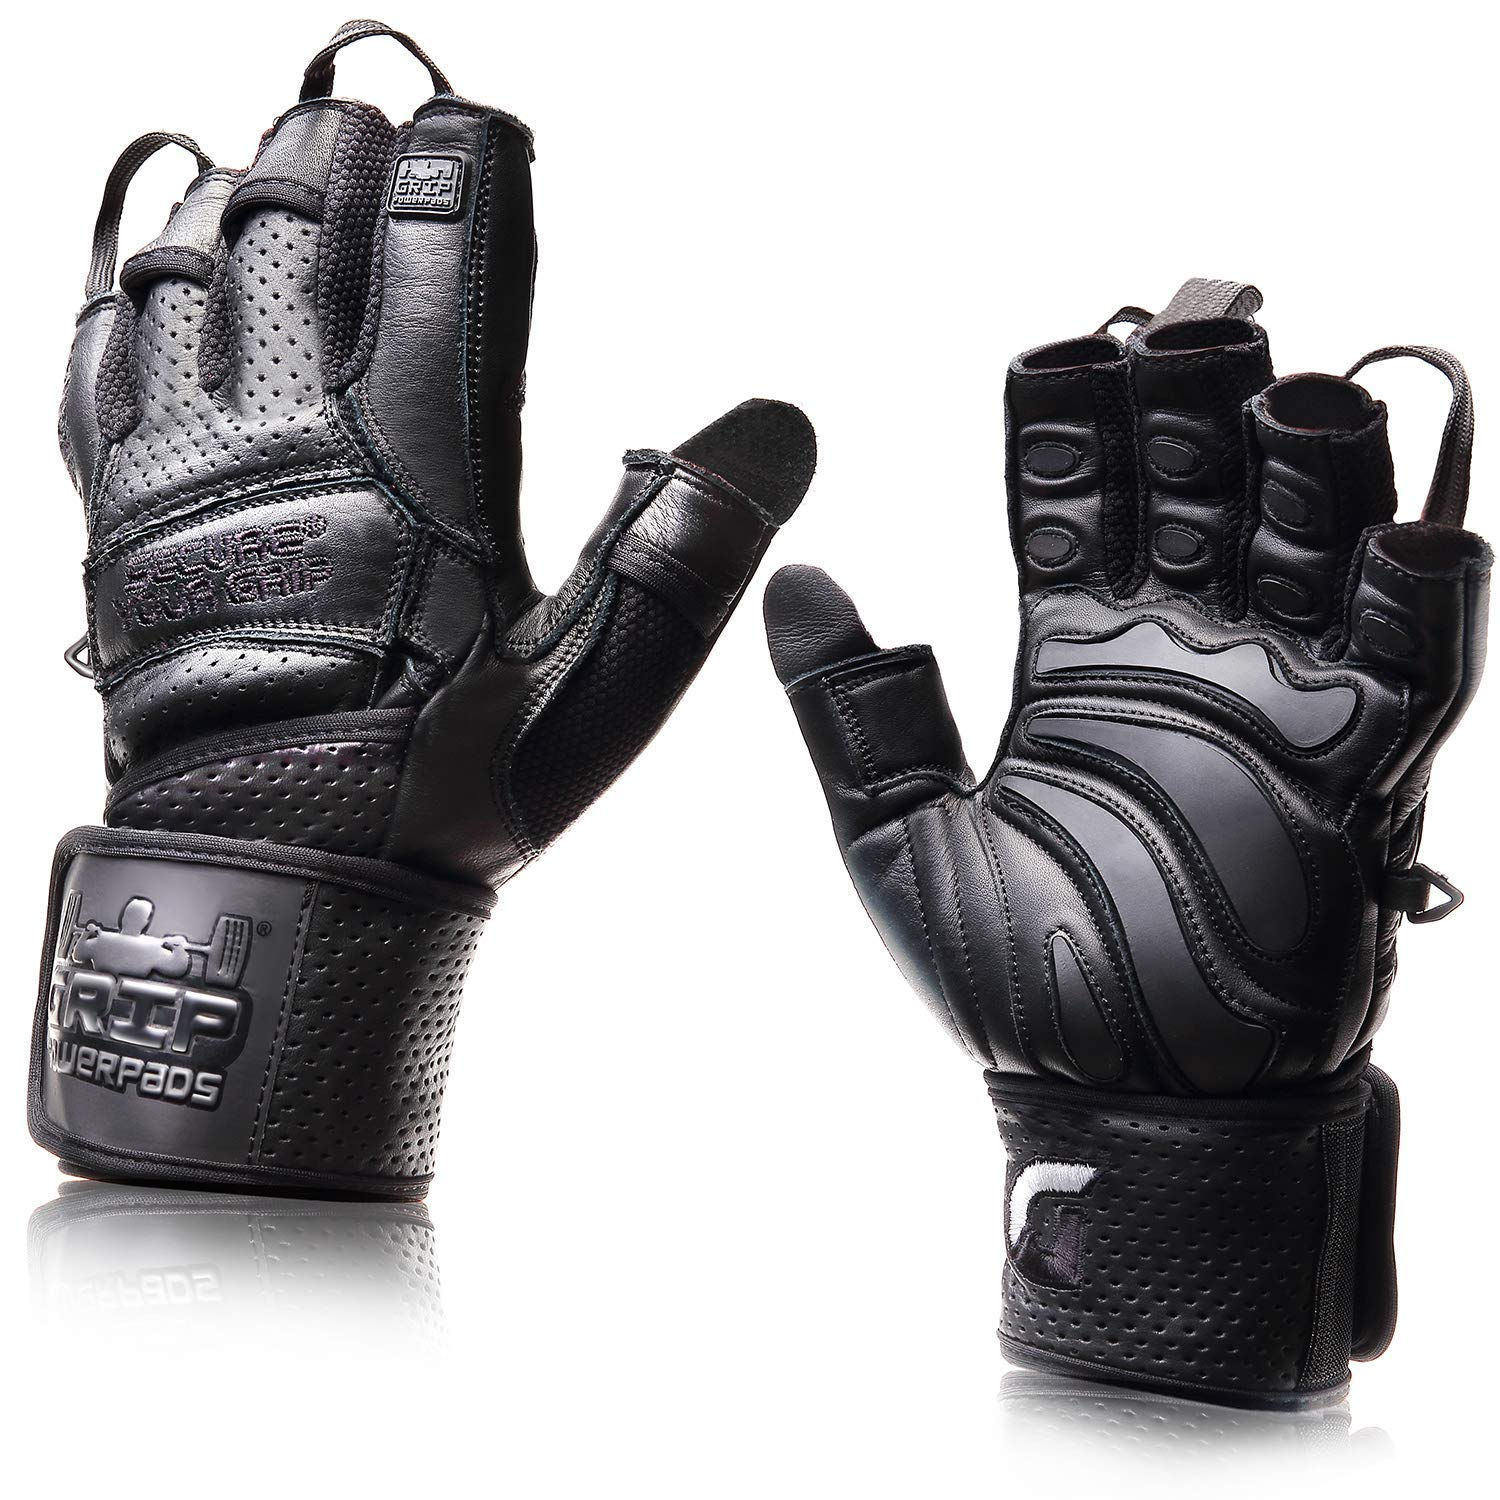 Elite Leather Gym Gloves with Built in 2'' Wide Wrist Wraps Best Leather Glove Design for Weight Power Lifting Bodybuilding & Strength Training Workout Exercises (Black, X-Small)